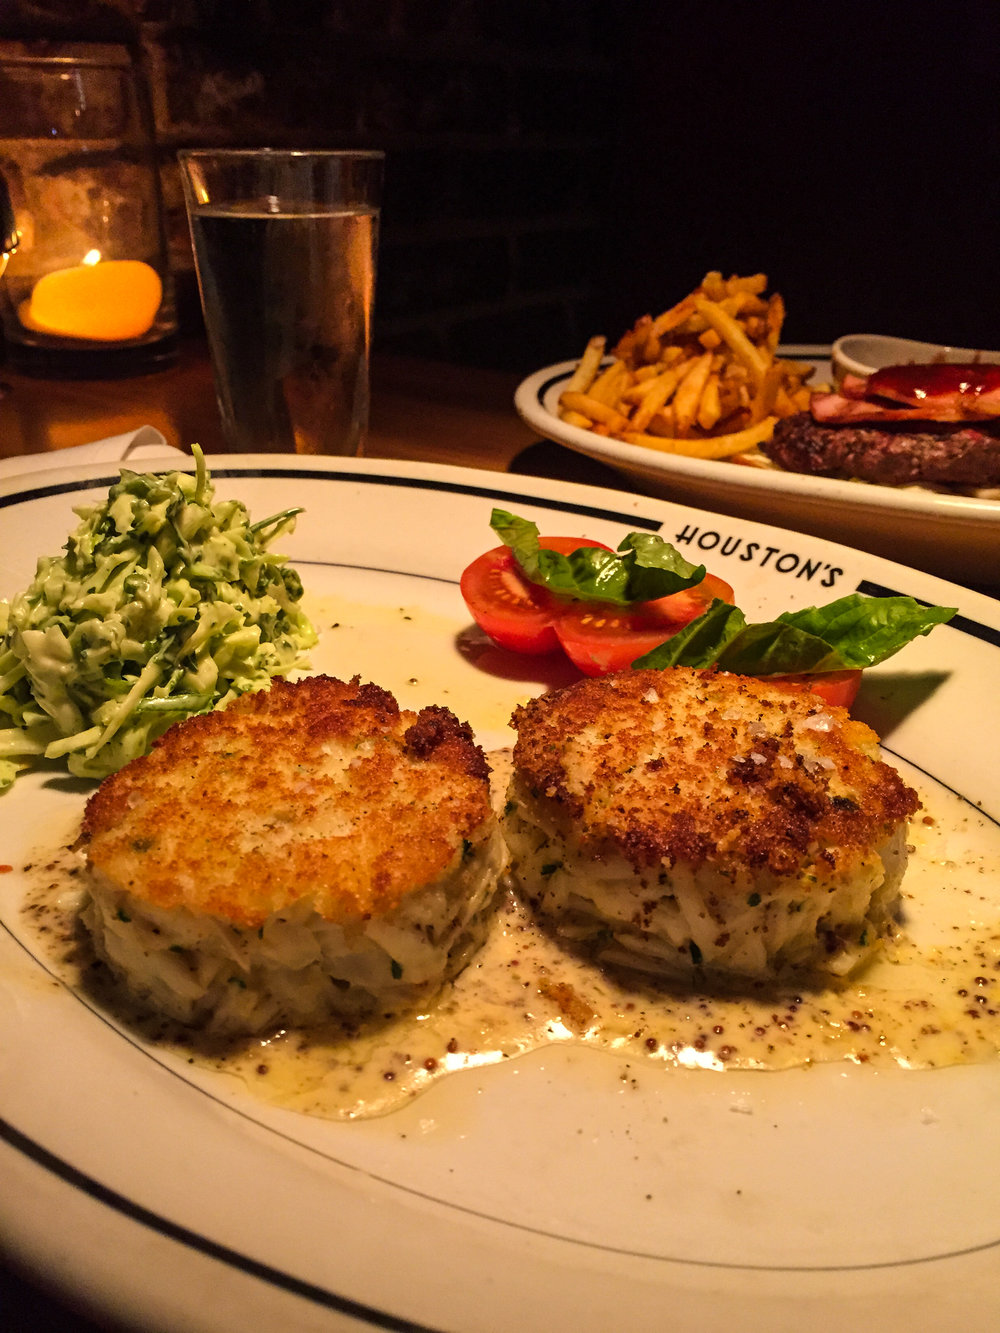 Jumbo Lump Crab Cakes from Houston's - Pan-seared with Pommery mustard and coleslaw (limited availability).$35.00